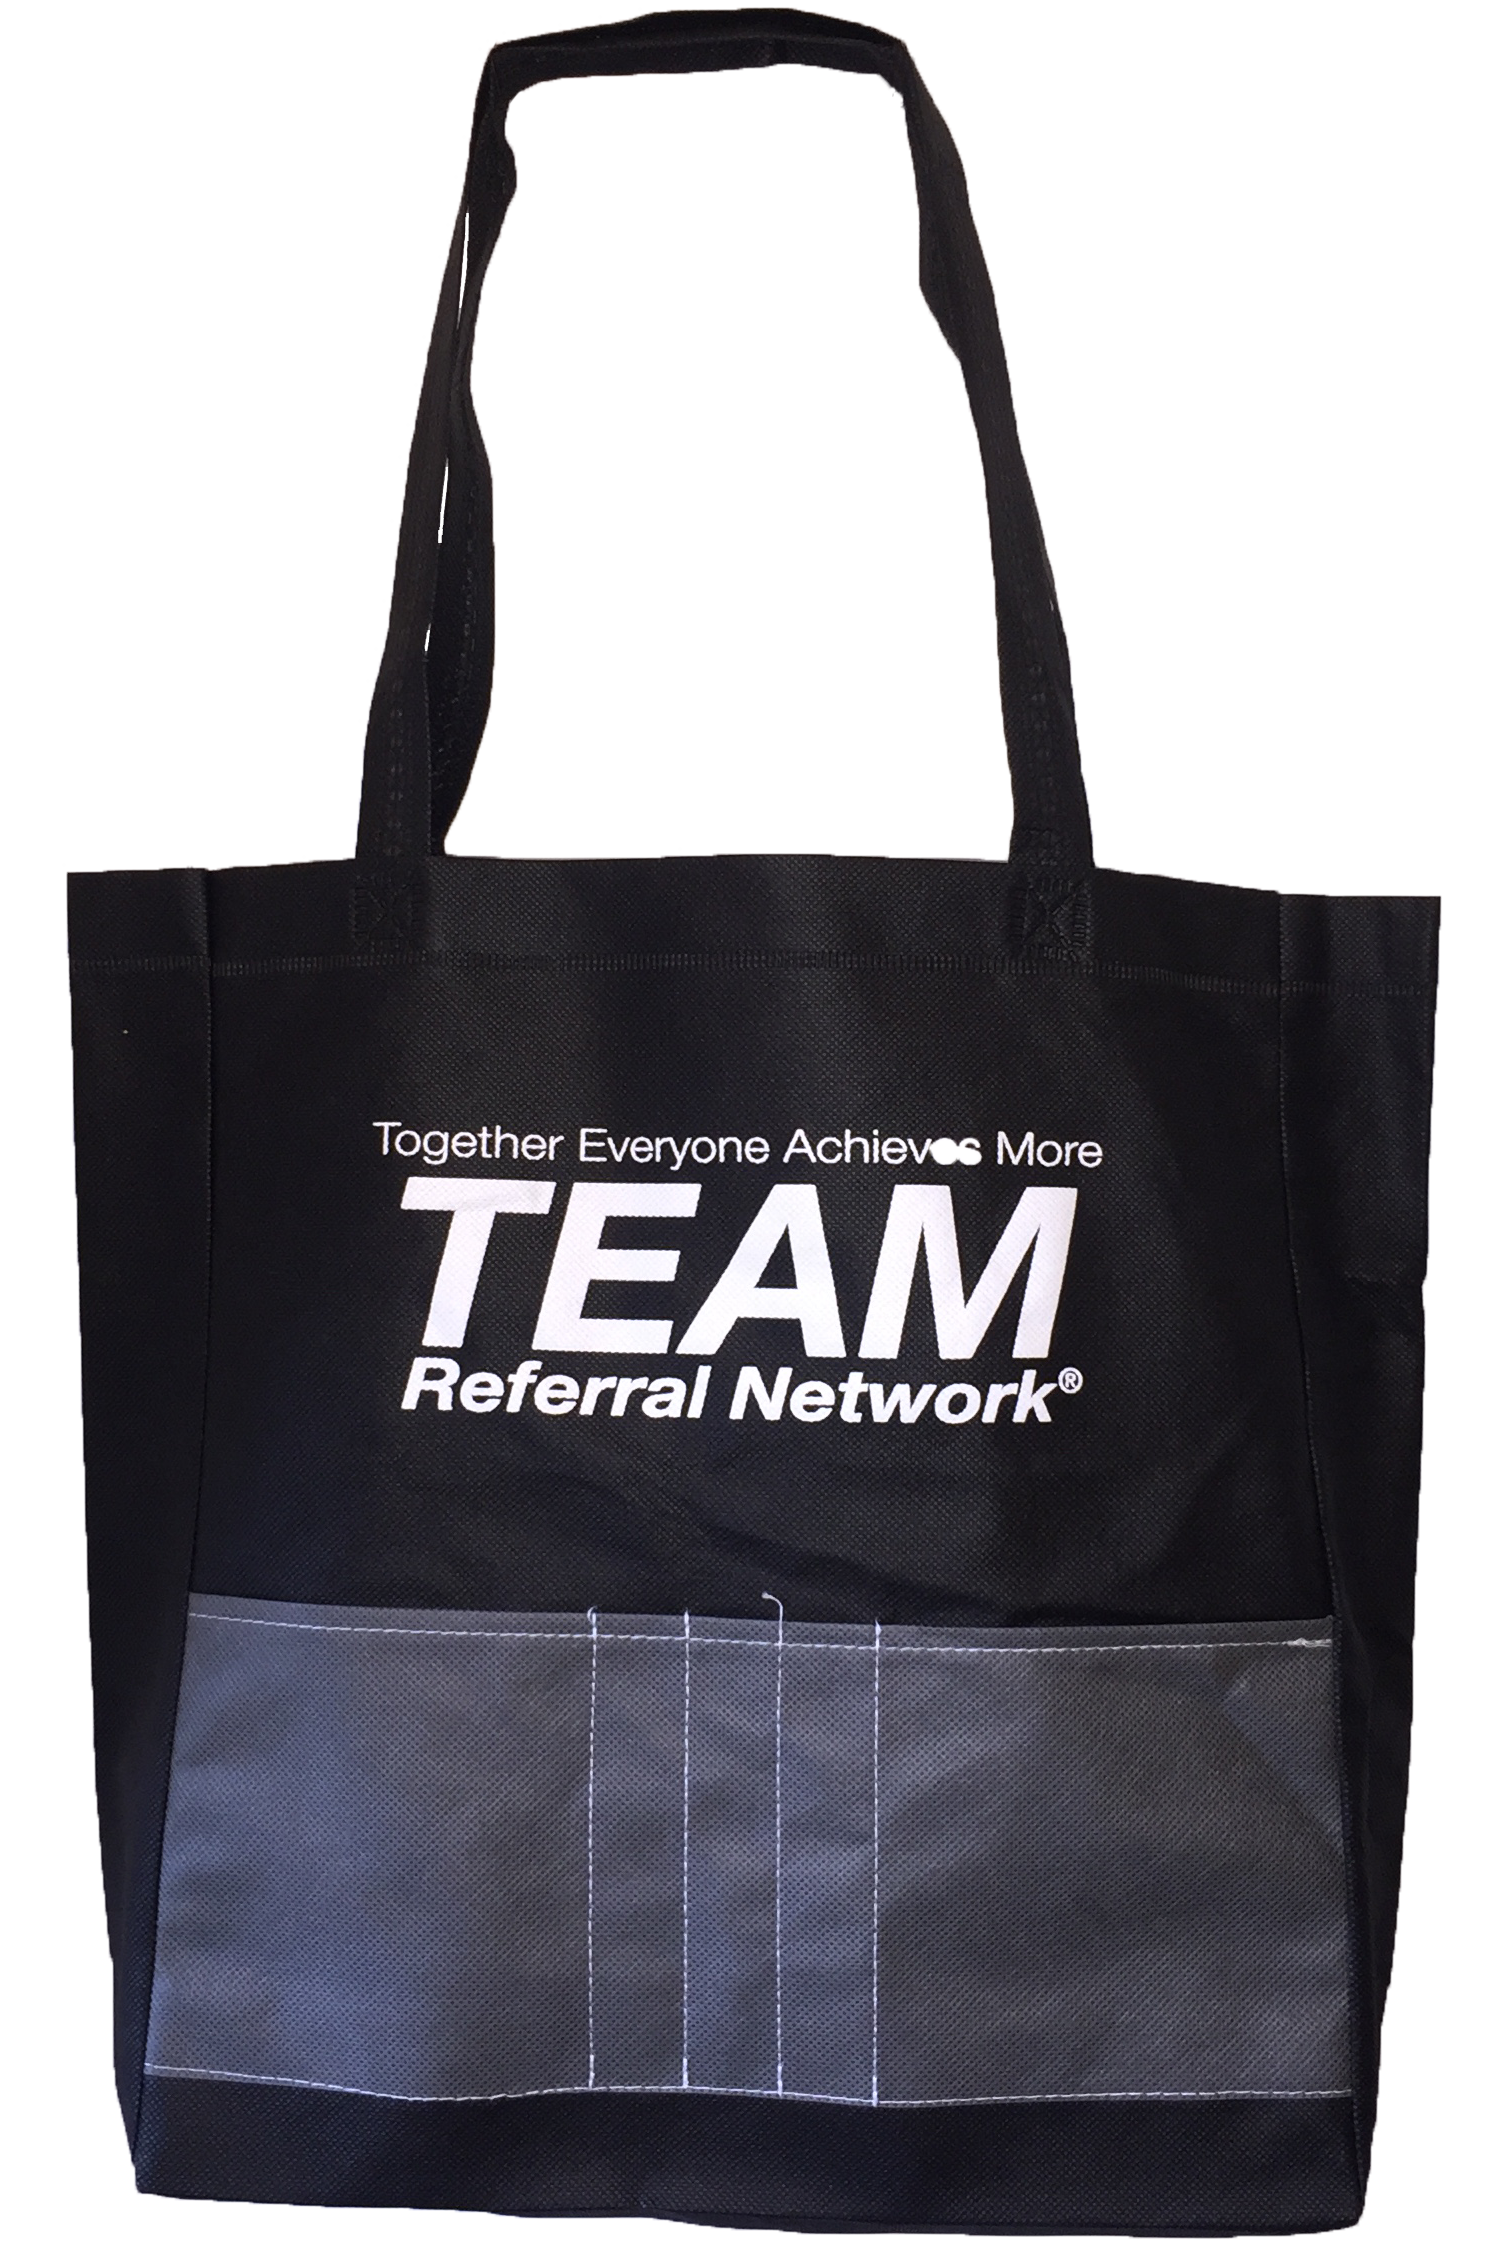 TEAM_Referral_Network_Tote_Bag